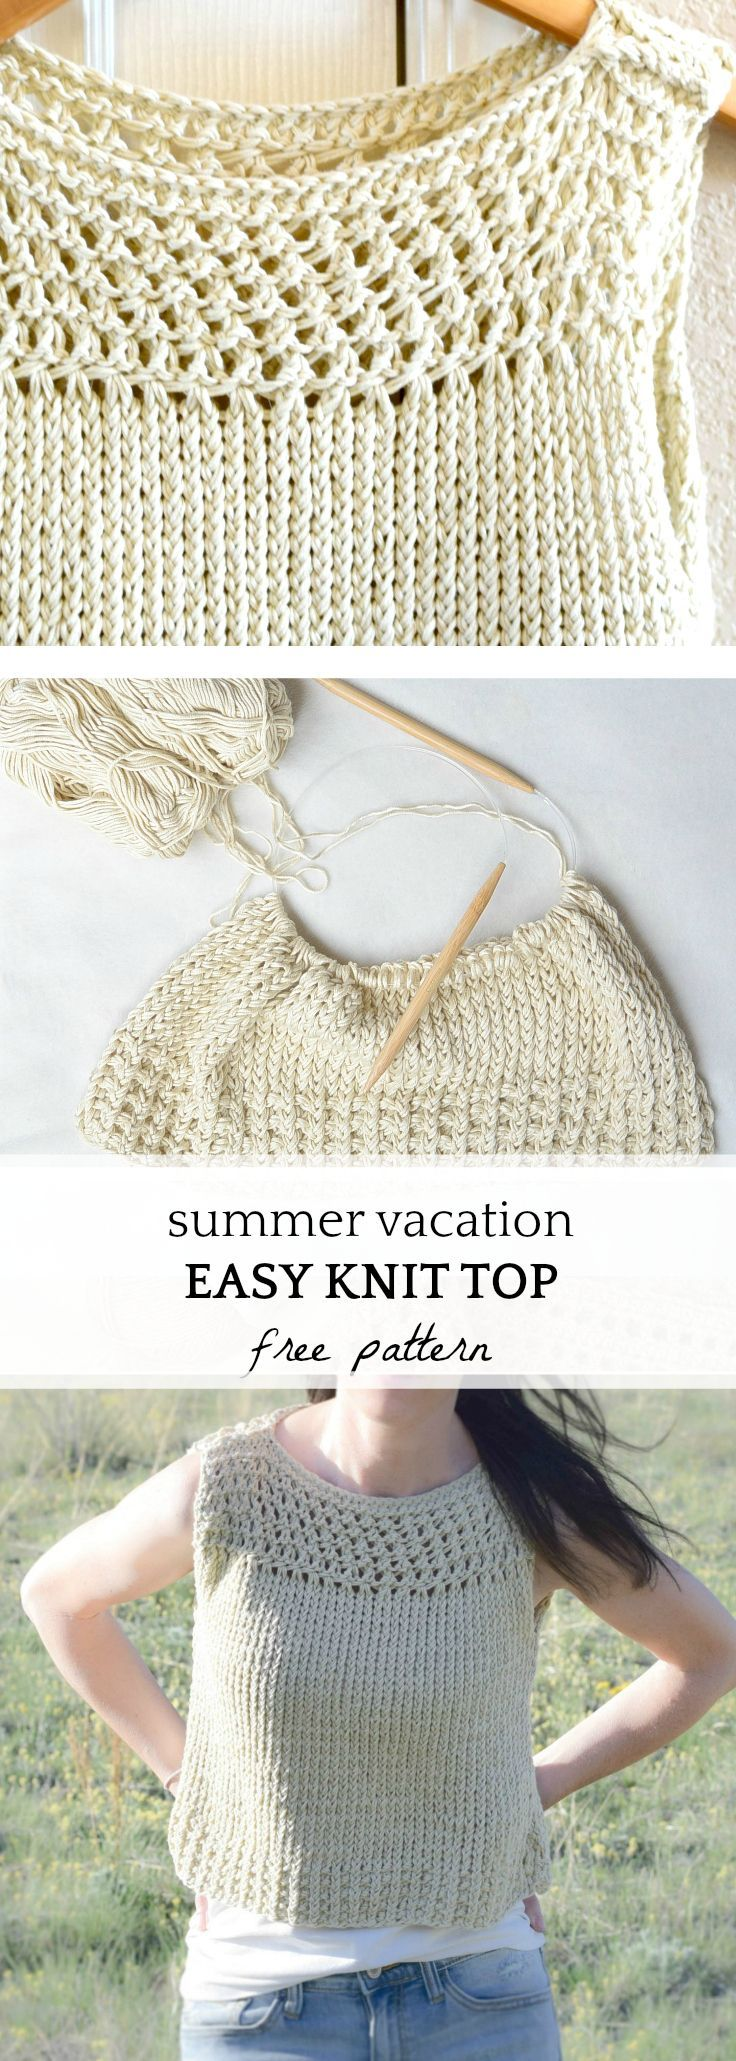 4721 best Knitted ideas images on Pinterest | Knitting patterns ...